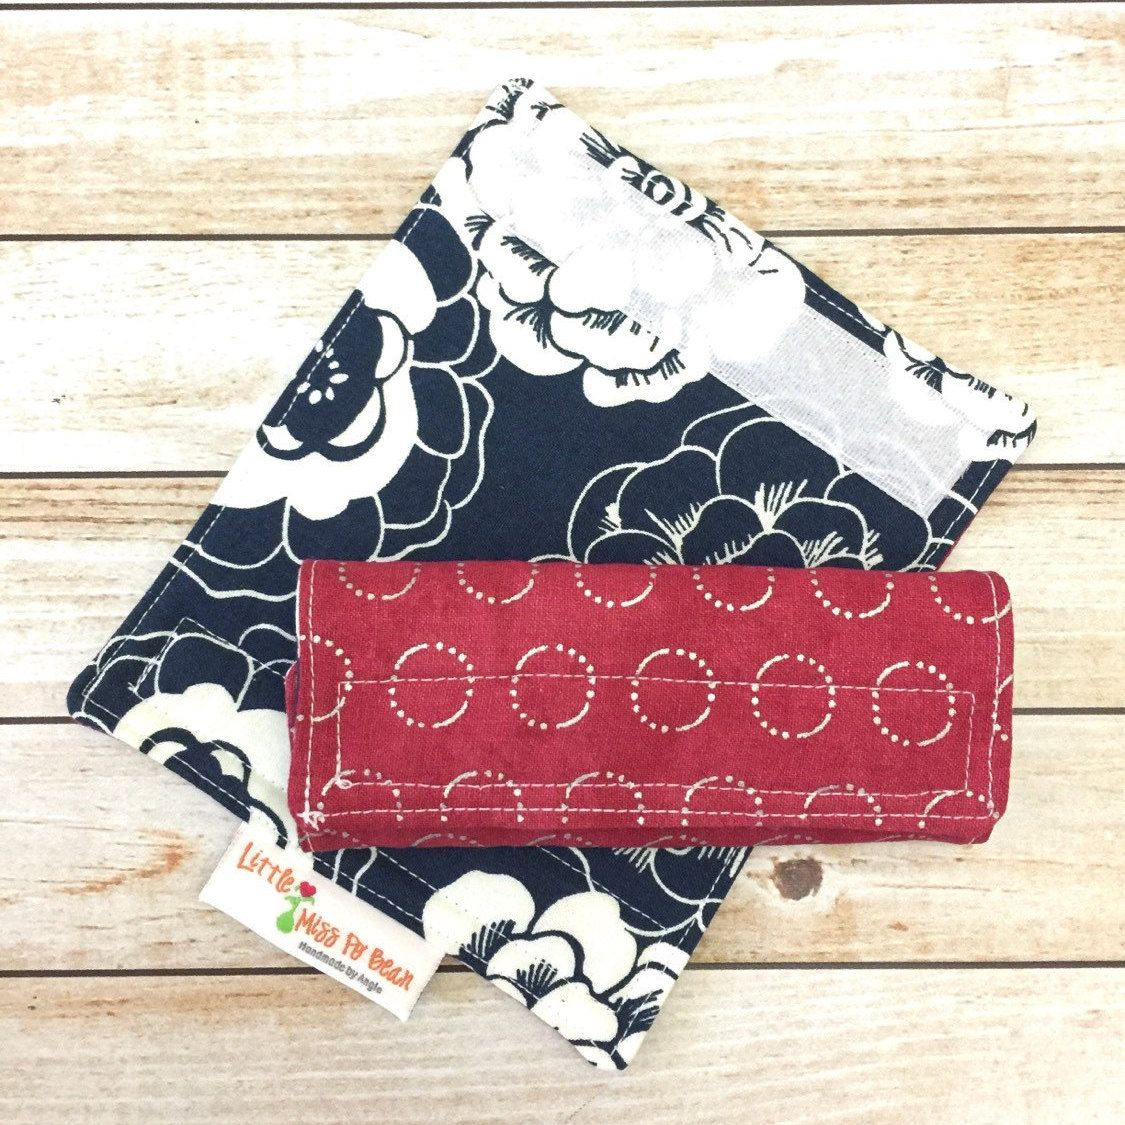 Luggage Handle Wrap Covers Set of 2 by LittleMissPoBean on Etsy